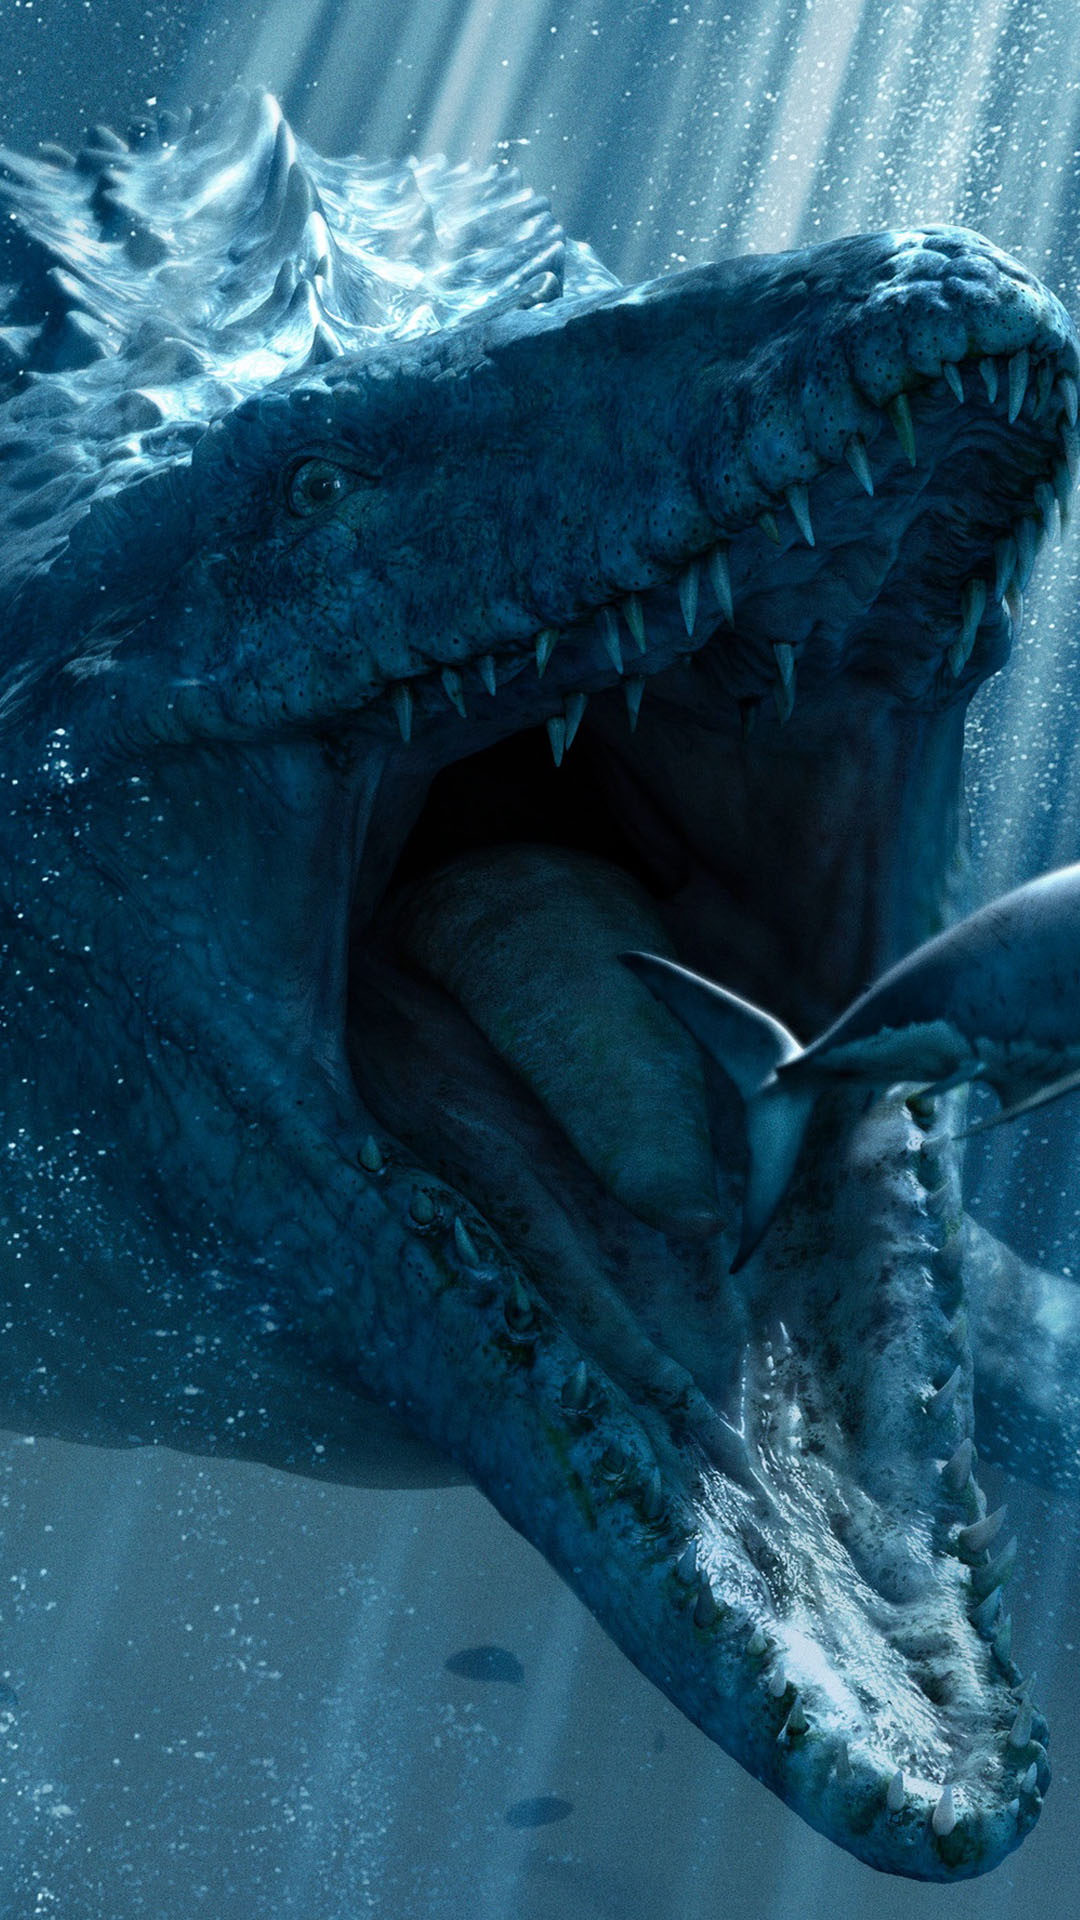 Cute Bow Iphone Wallpaper Jurassic World Underwater Iphone 6 6 Plus And Iphone 5 4